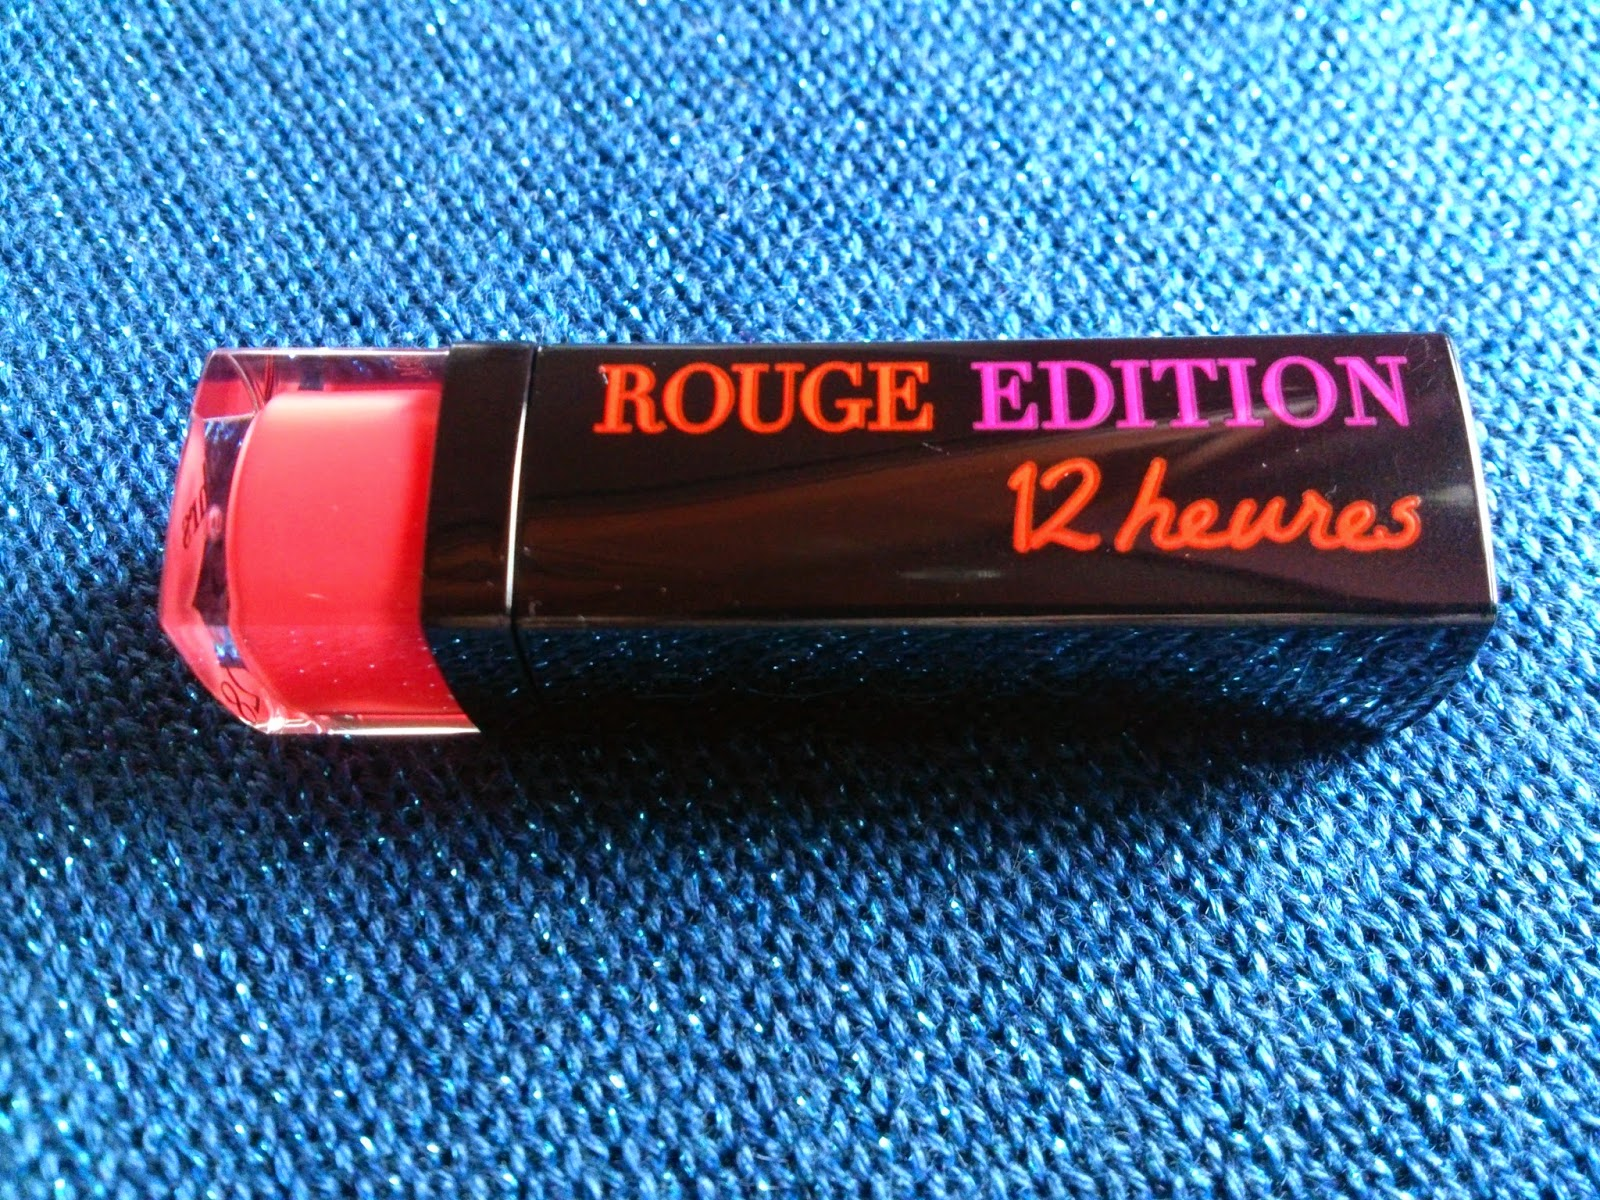 ROUGE EDITION 12H BOURJOIS